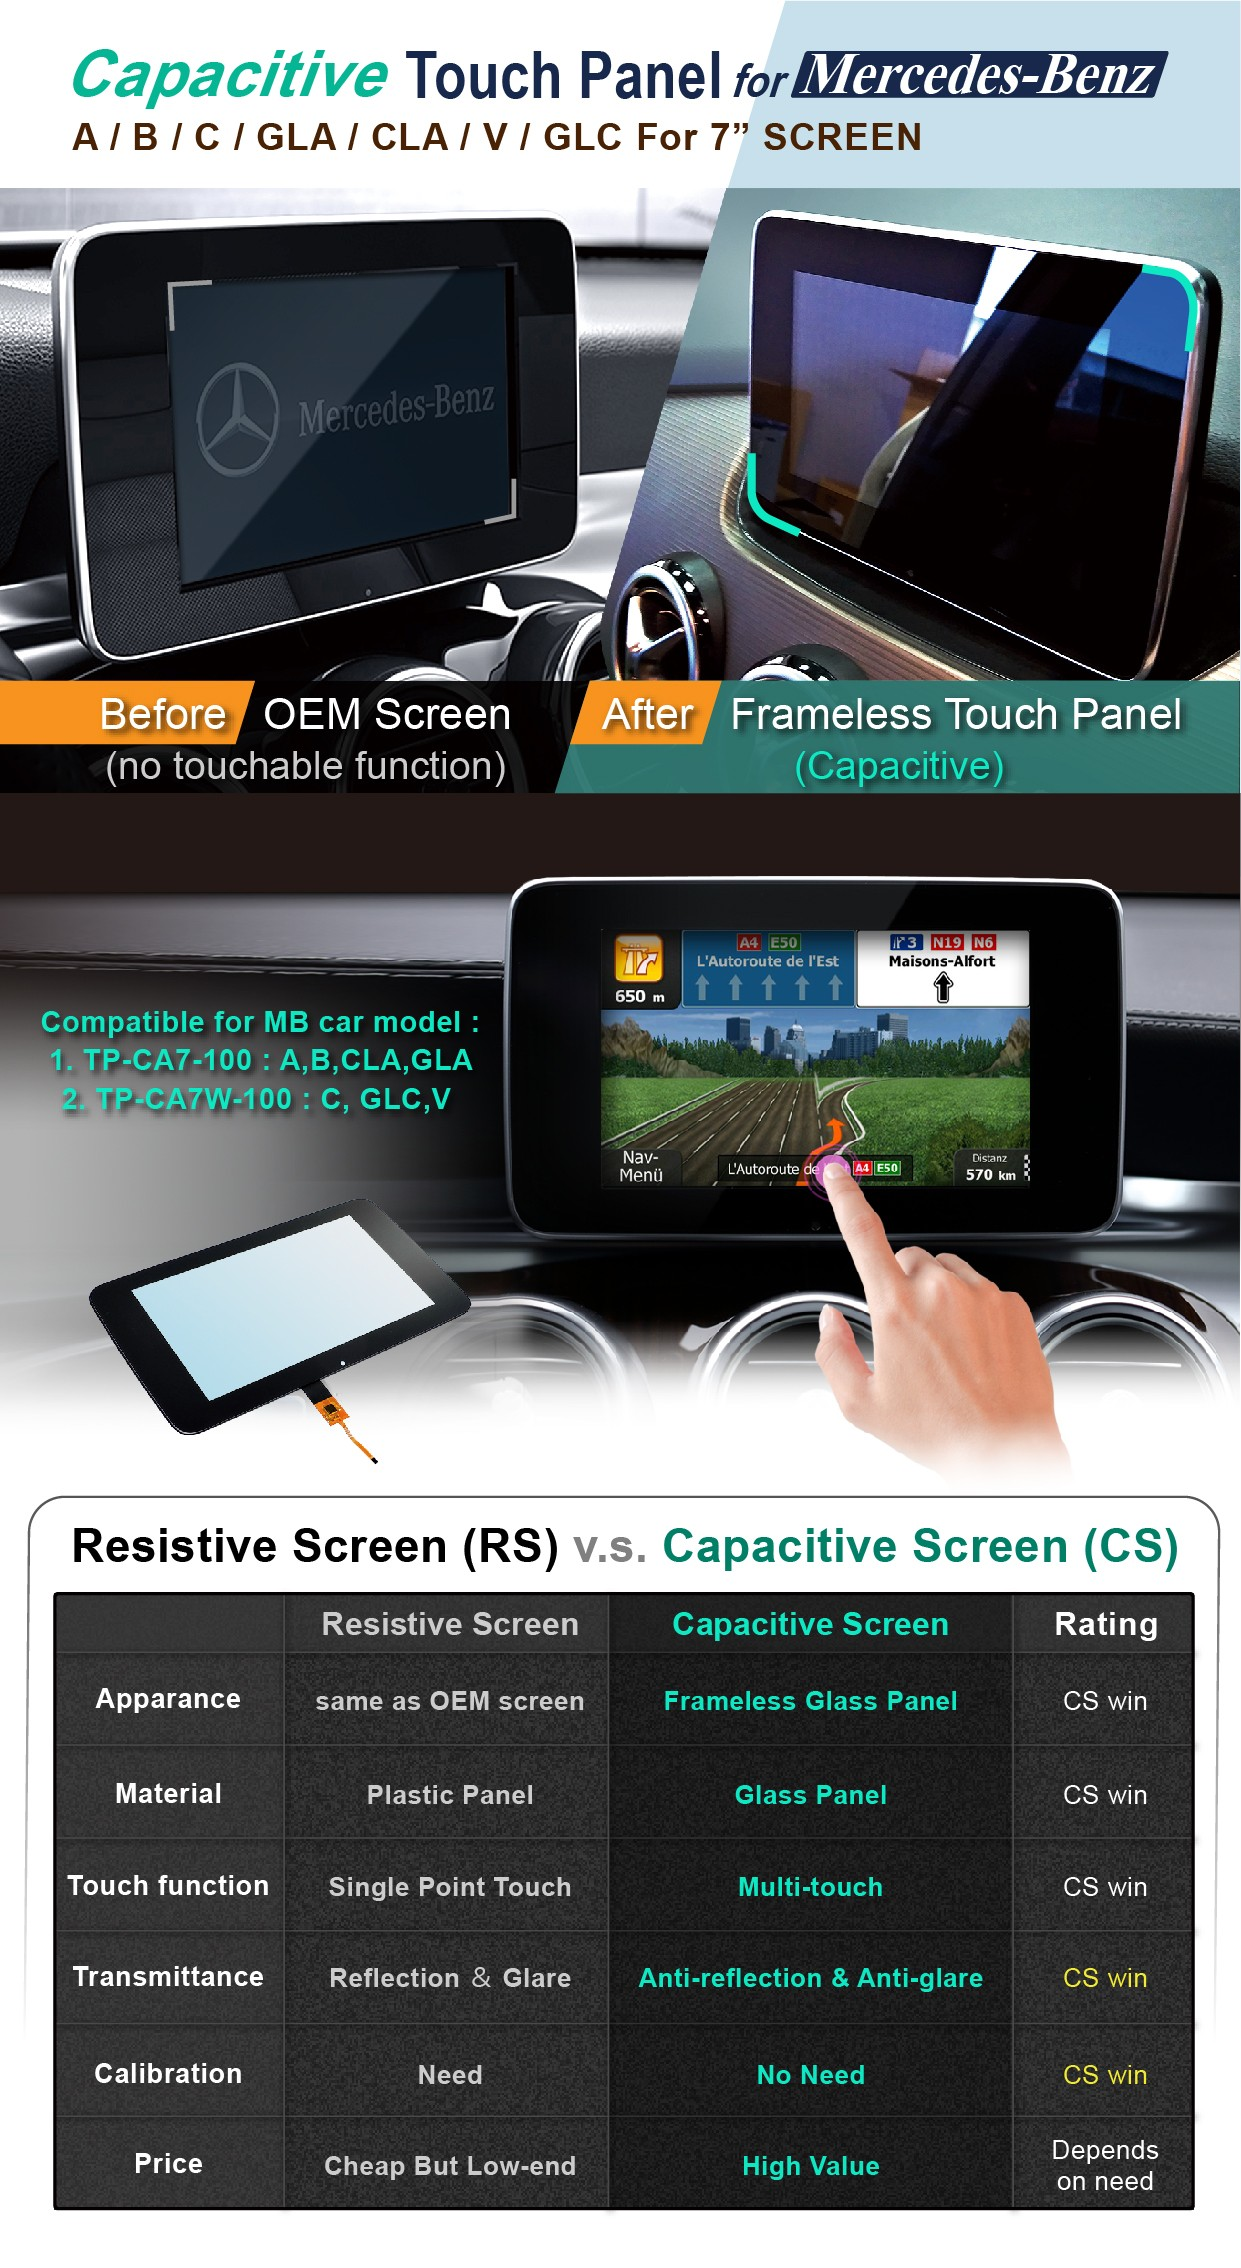 Capacitive Touch Panel for Benz